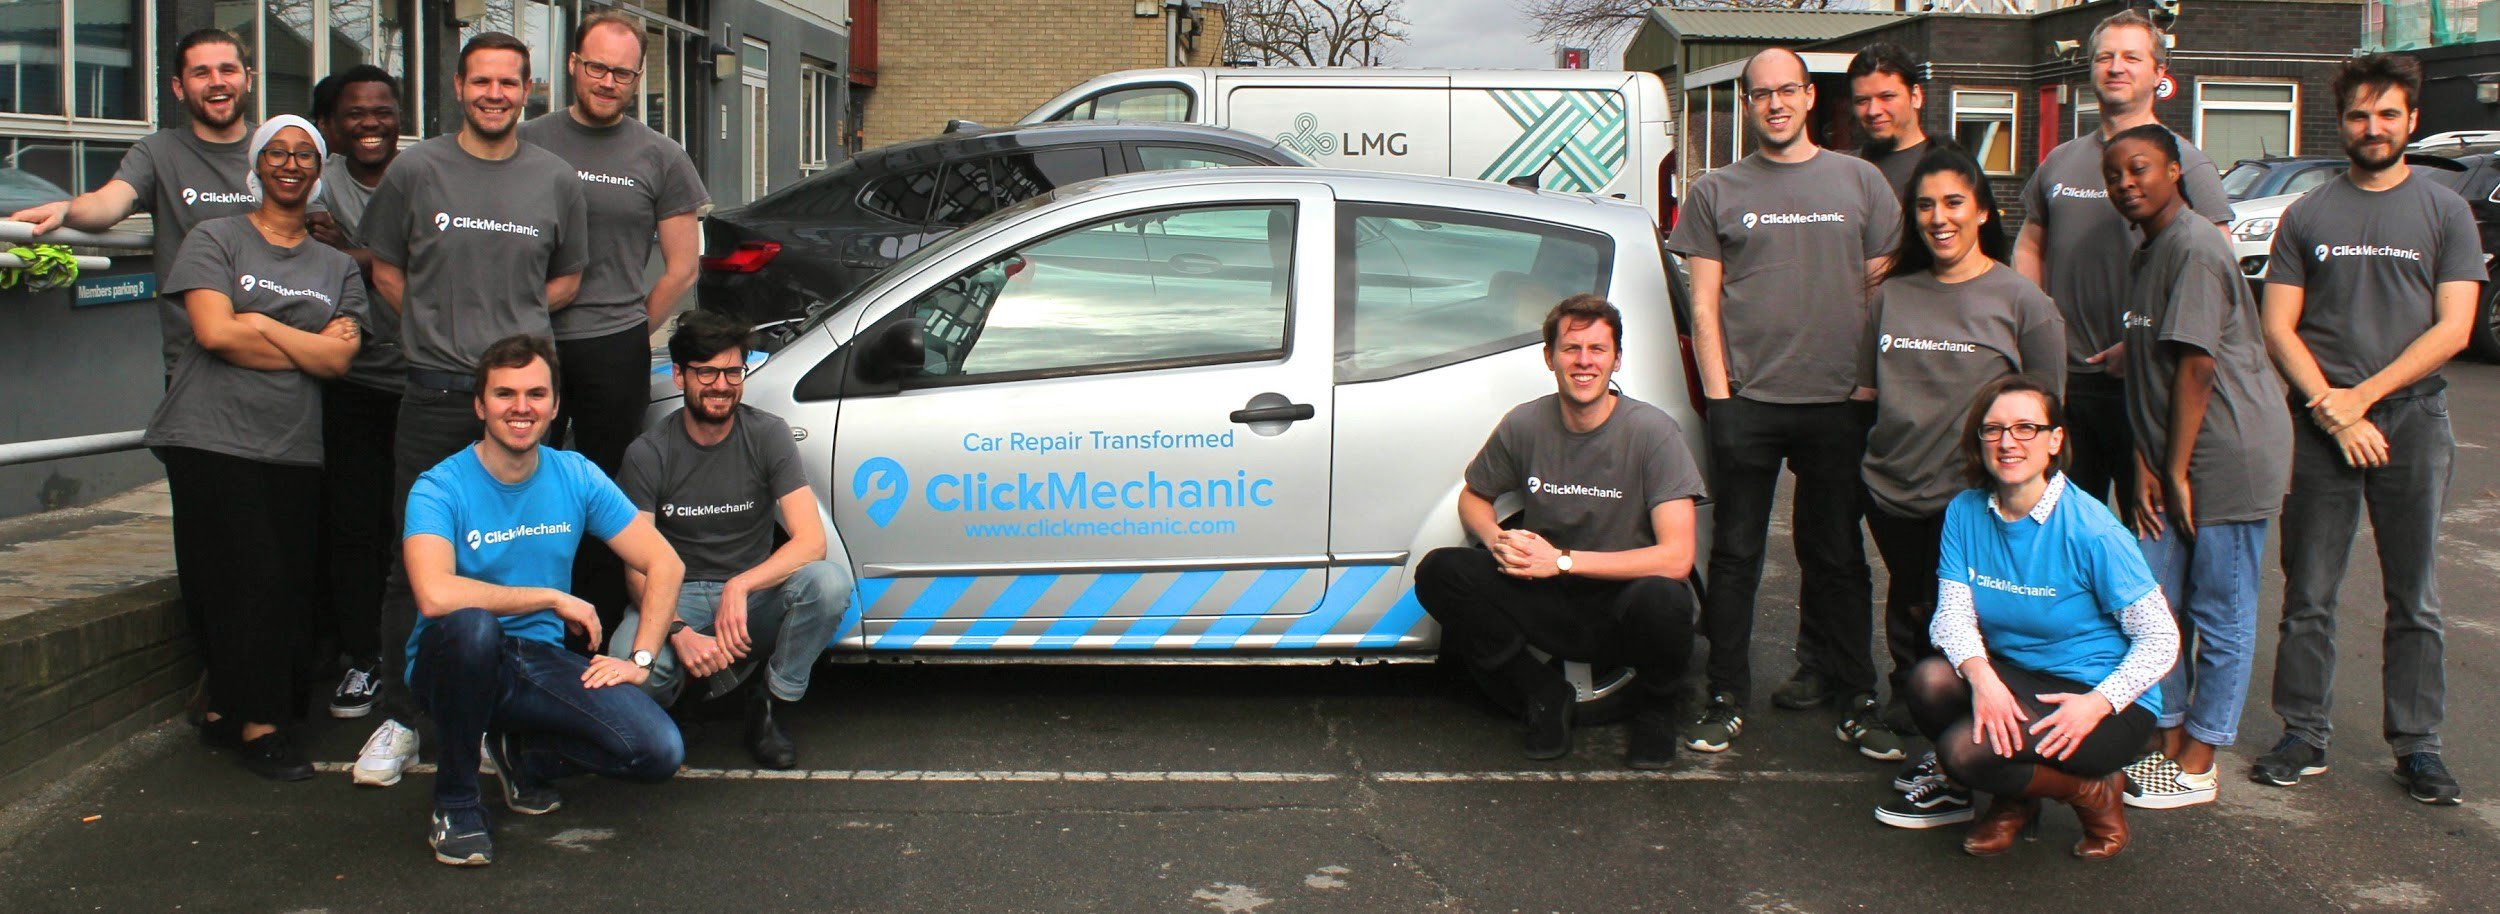 clickmechanic-team